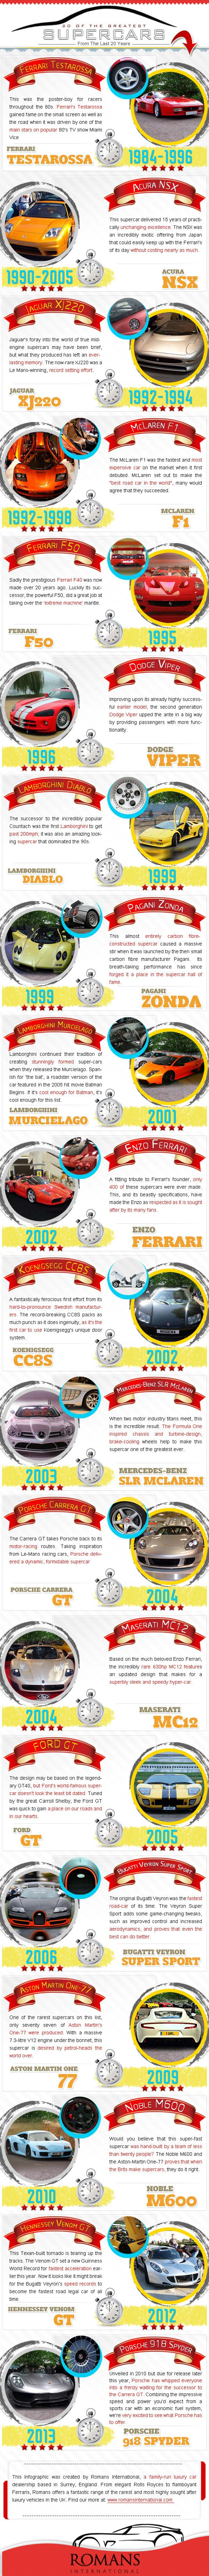 Supercars Collection-Infographic